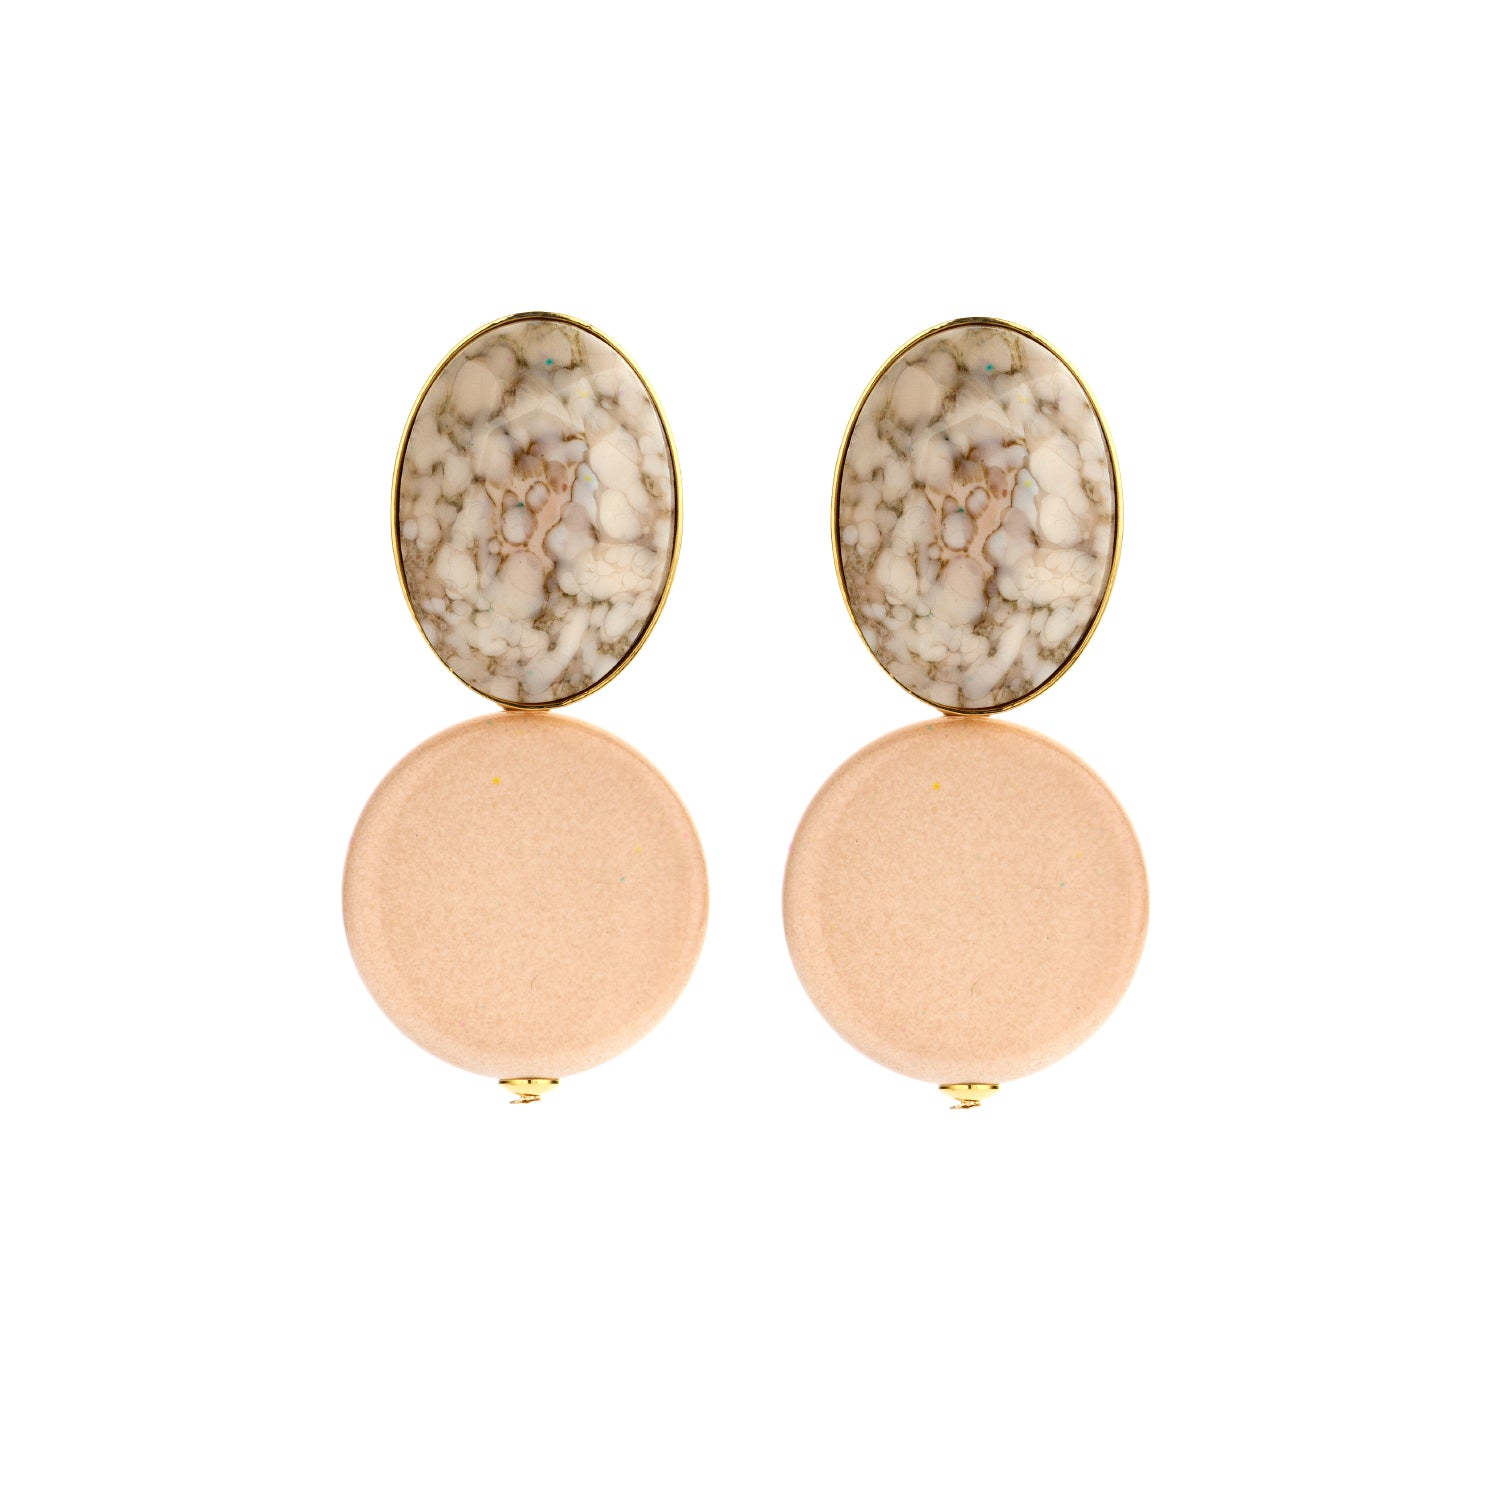 Mona nude earrings - Souvenirs de Pomme